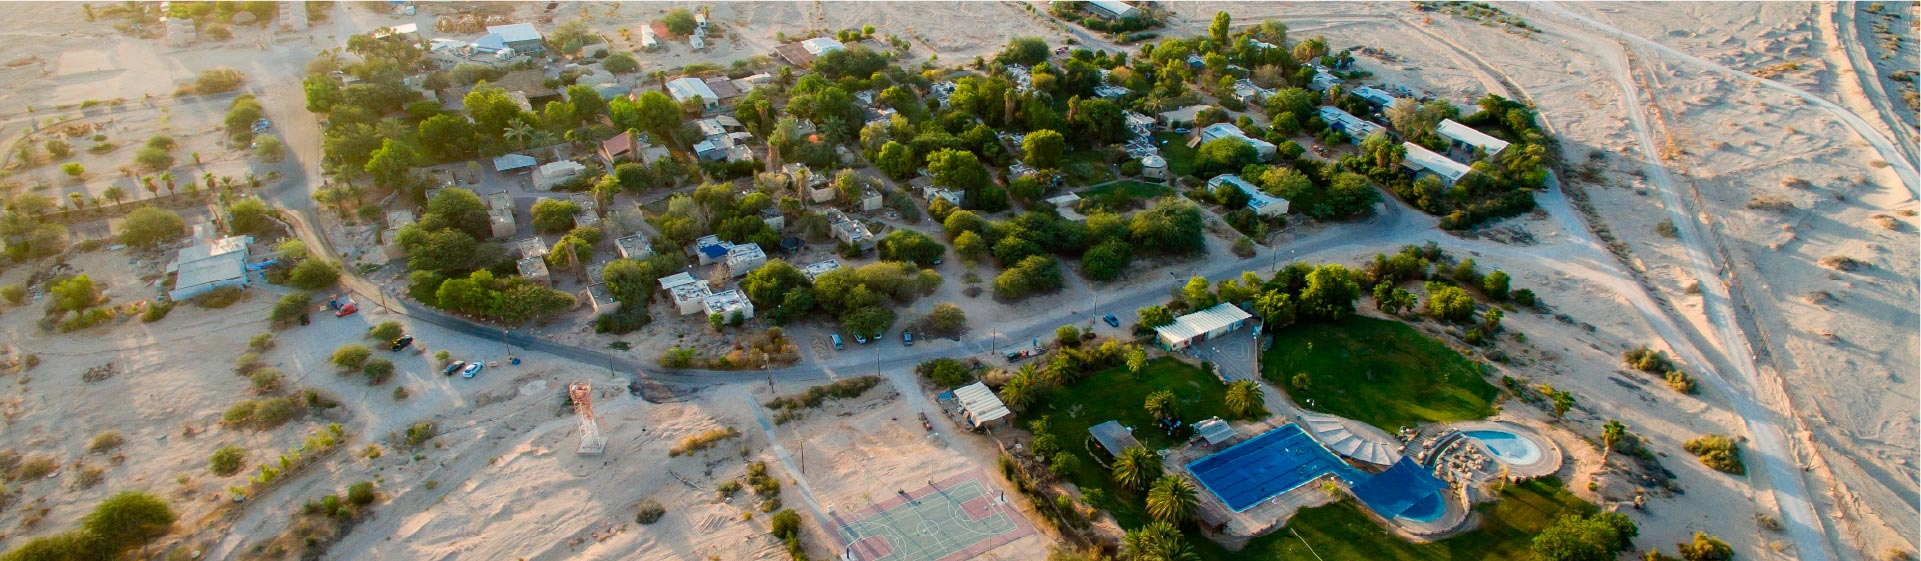 kibbutz lotan from above